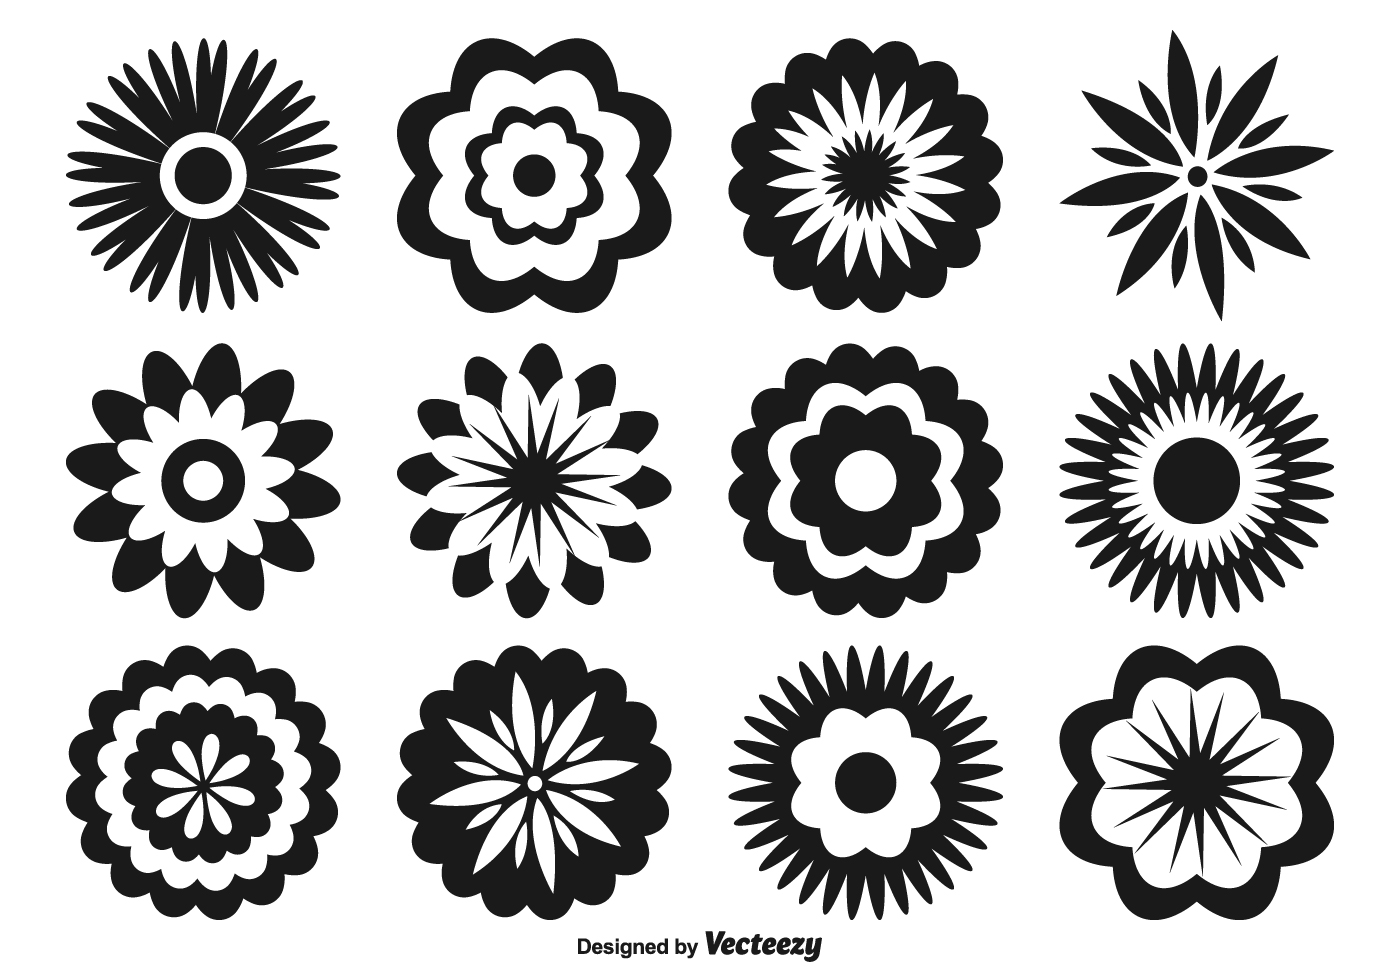 1400x980 Assorted Flower Shapes Vector Free Vector Download In .ai, .eps